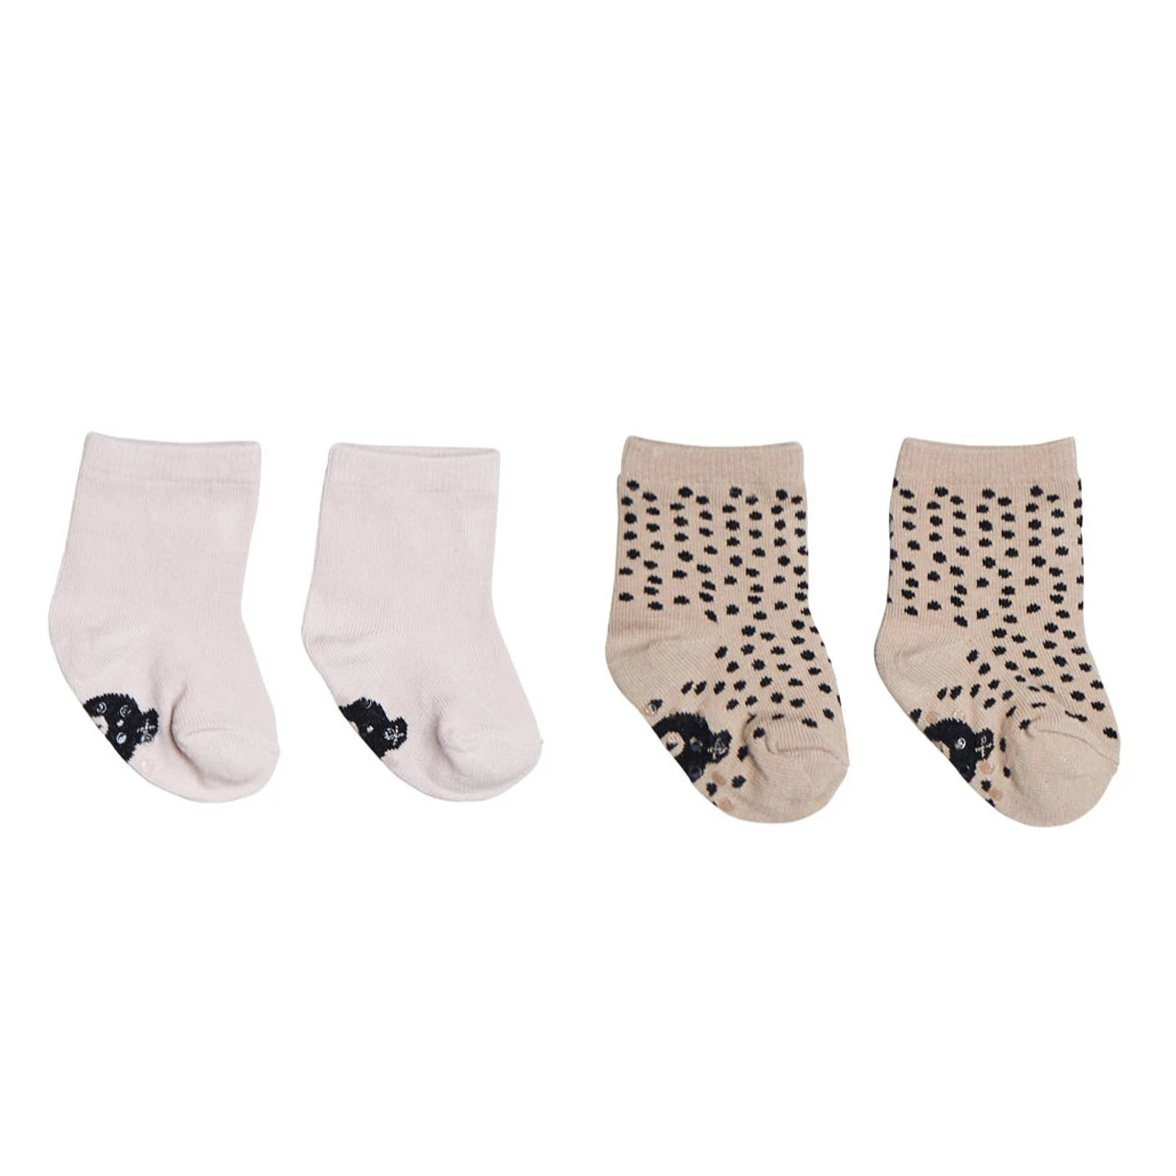 Freckle Sock (2 Pack)